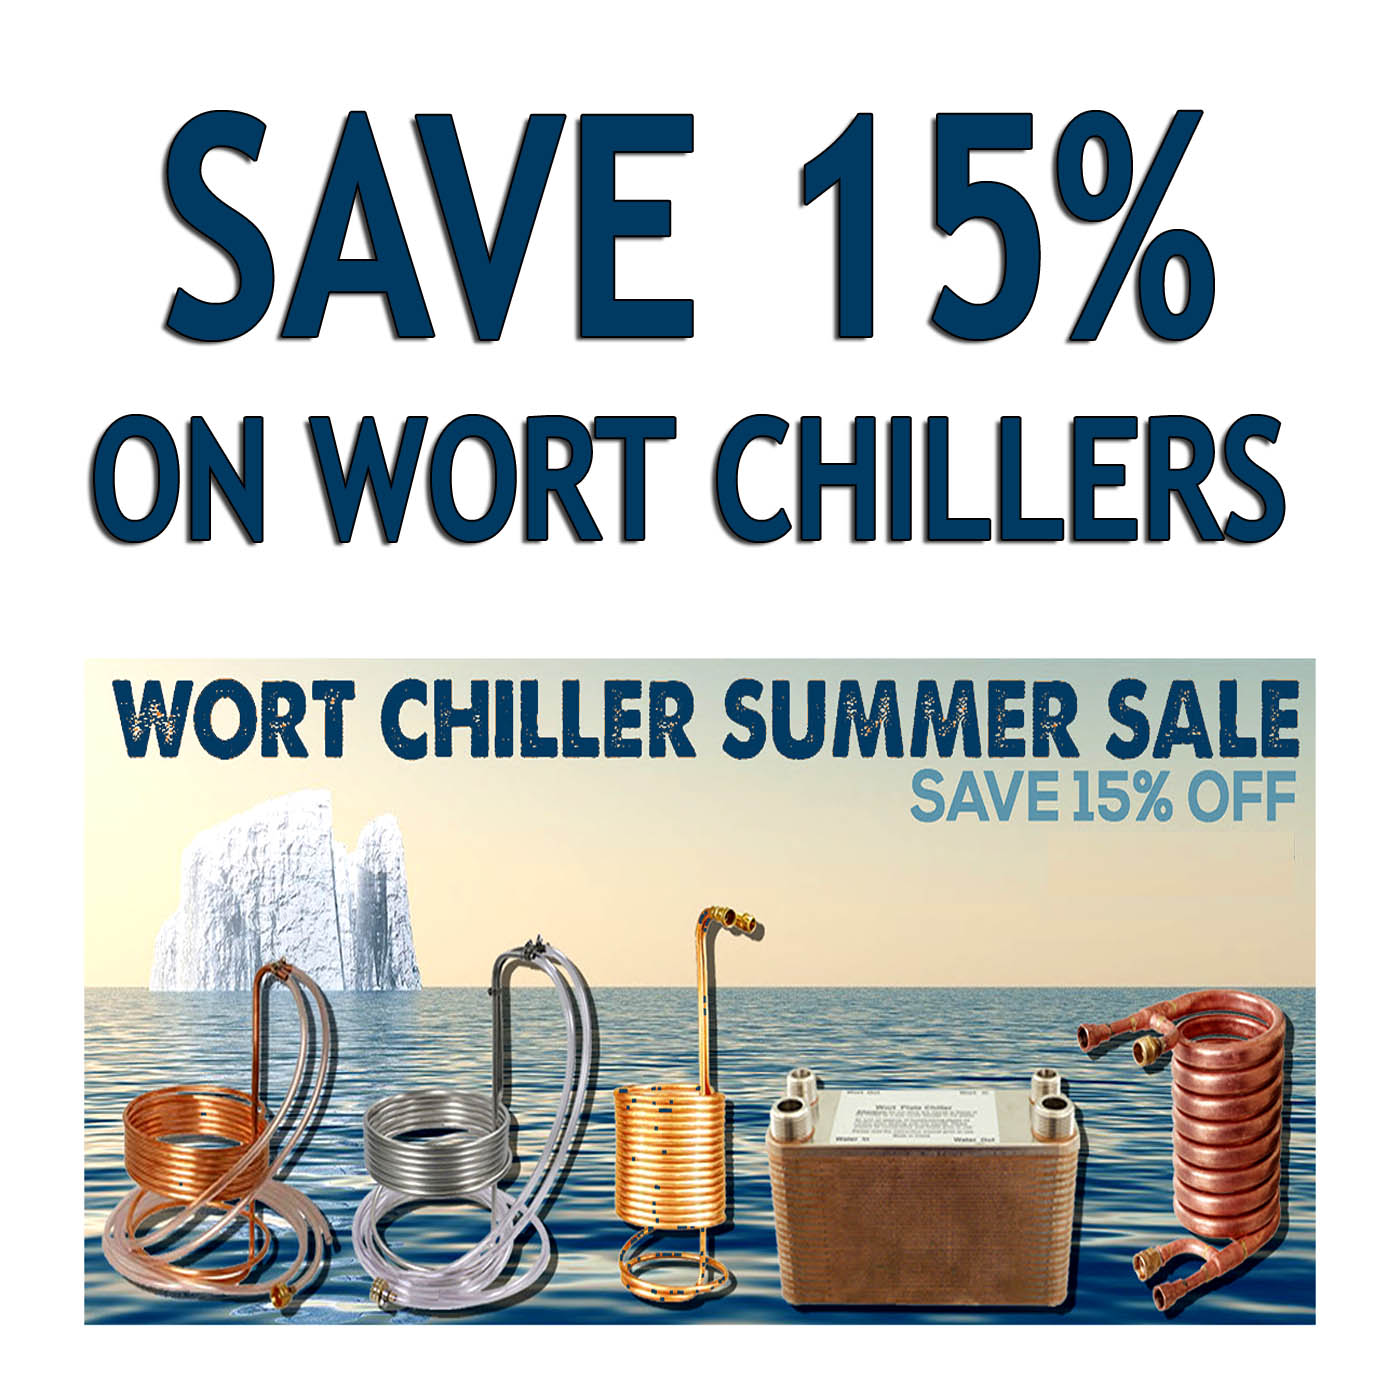 Save 15% on Wort Chillers with this MoreBeer.com Promo Code Coupon Code